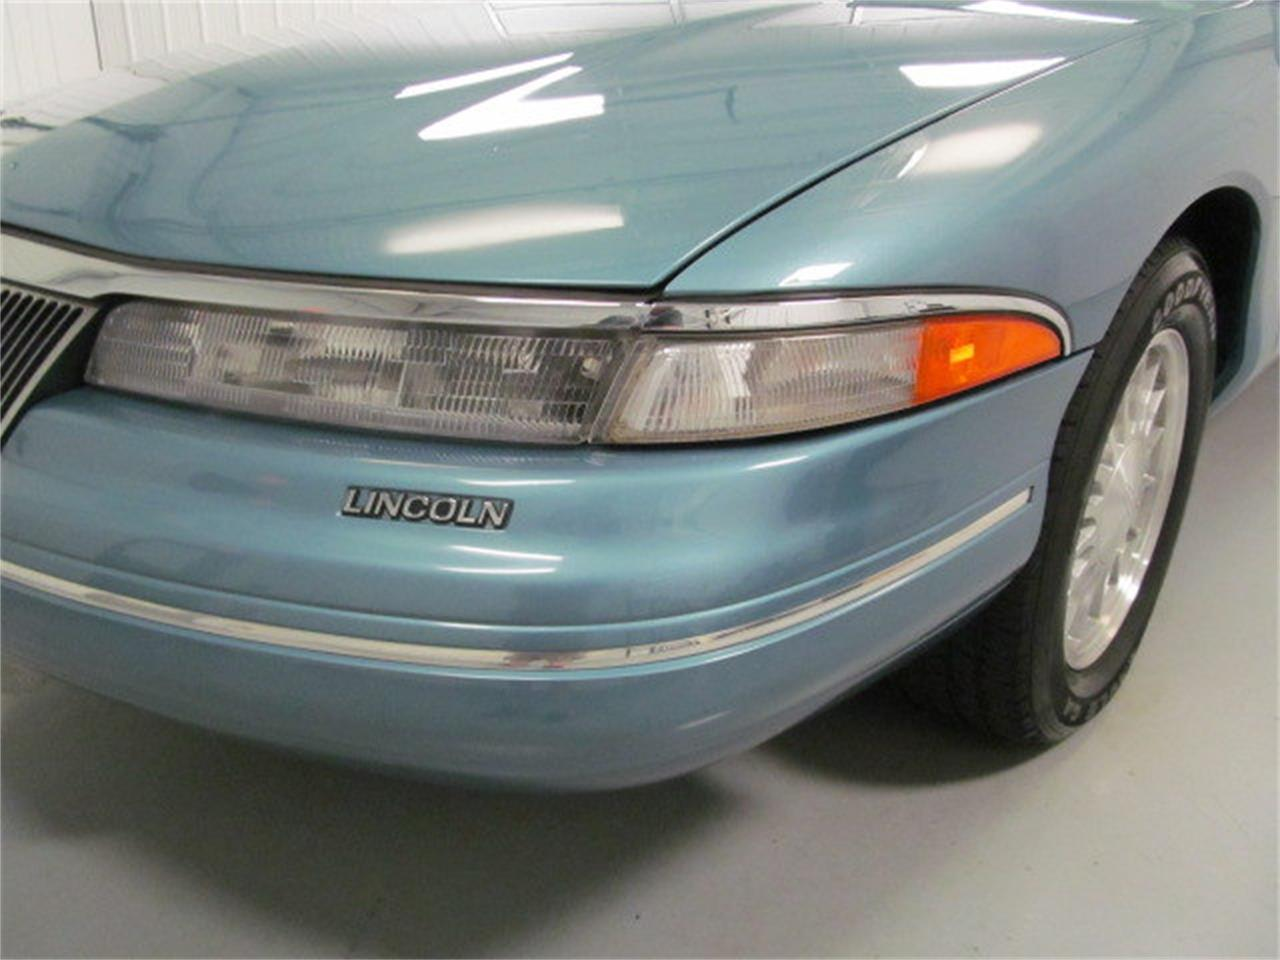 Large Picture of 1993 Lincoln Mark VIII - $9,900.00 Offered by Duncan Imports & Classic Cars - JL9Z